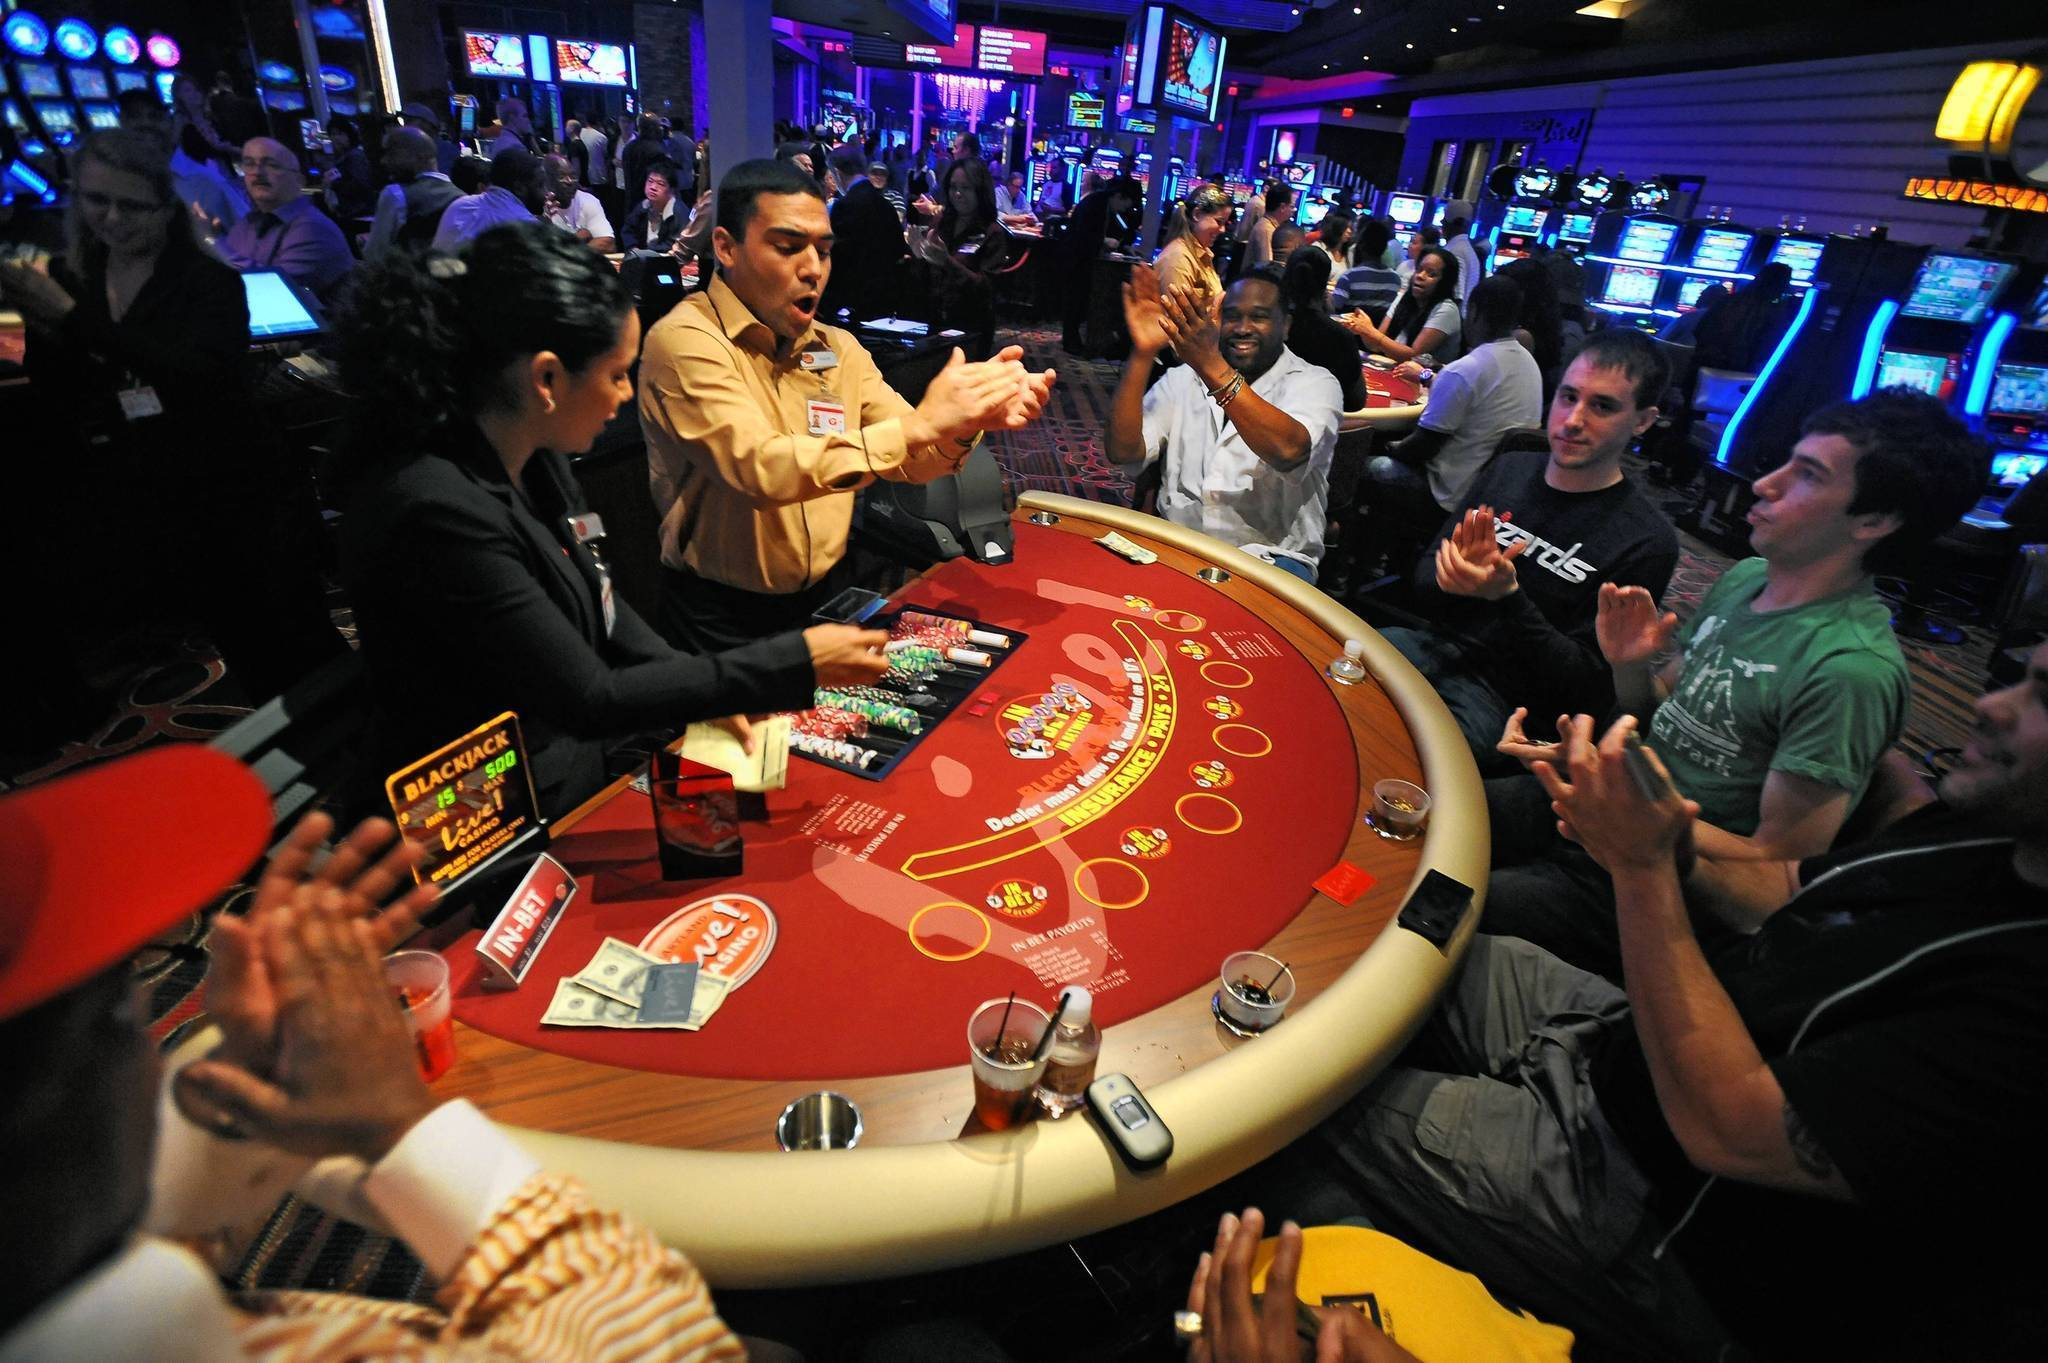 New gambling casino in maryland hollywood seminole casino hard rock